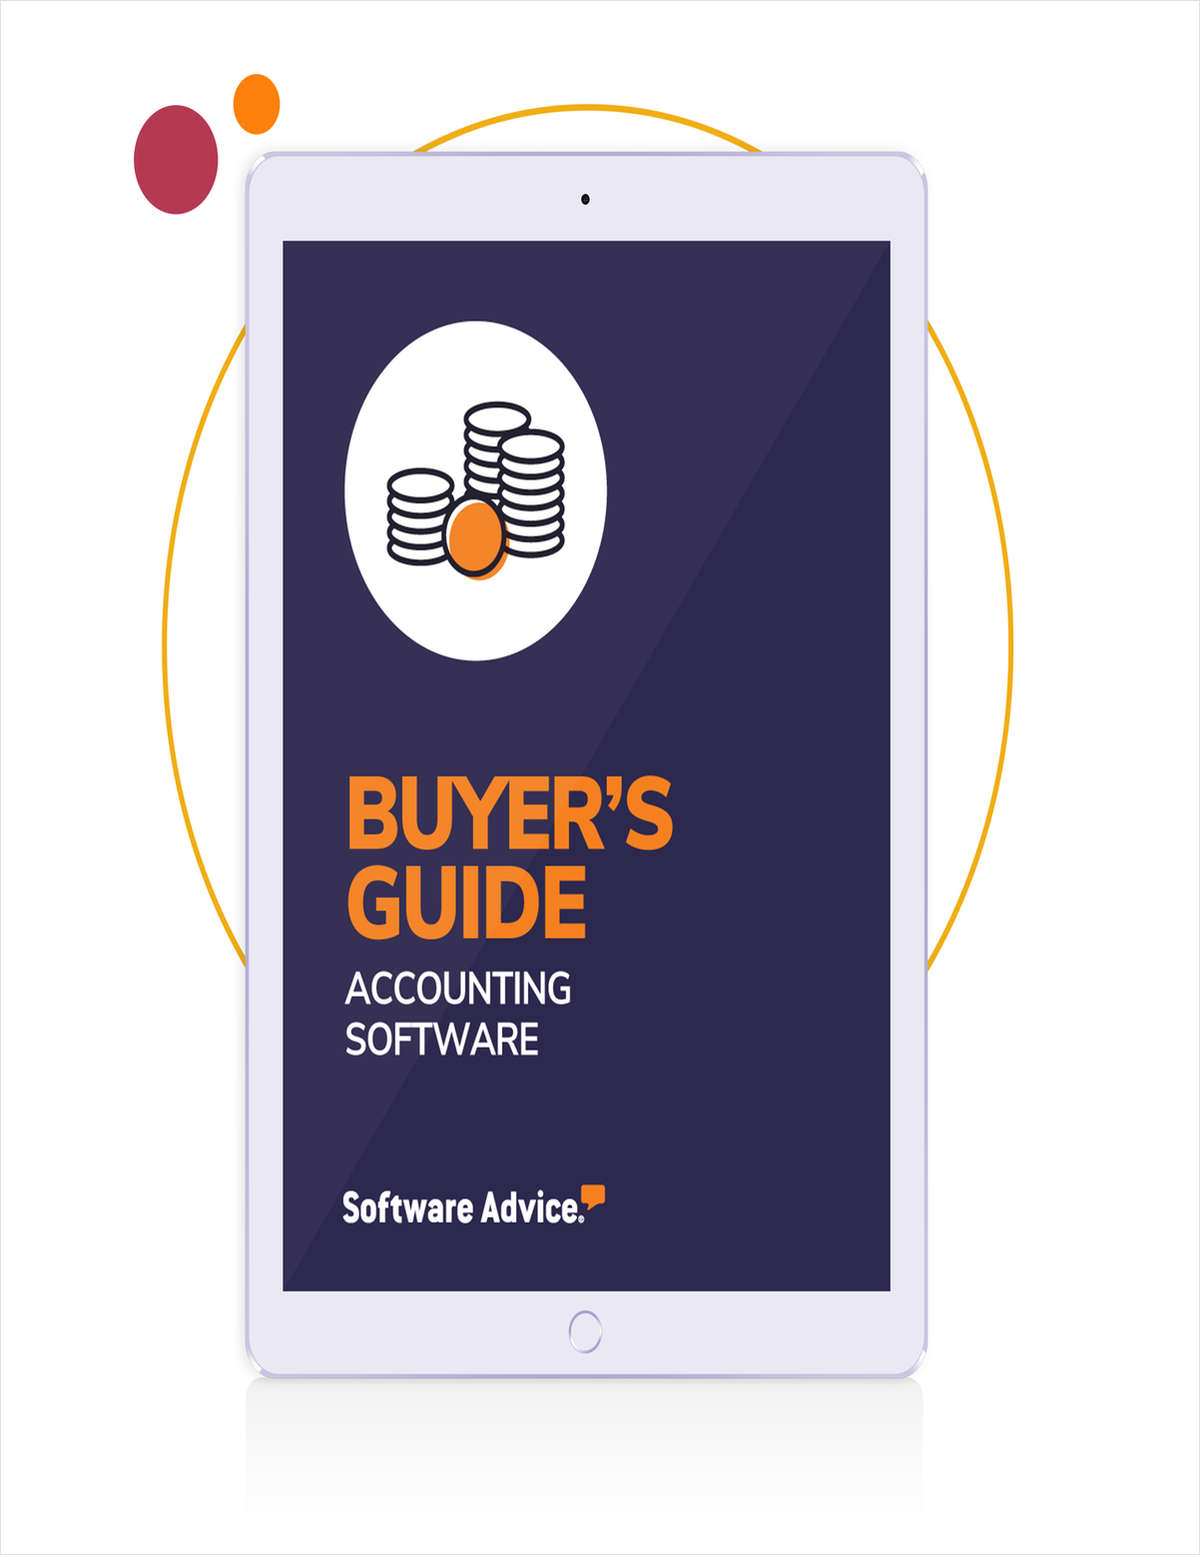 Buying Accounting Software in 2020? Read This Guide First